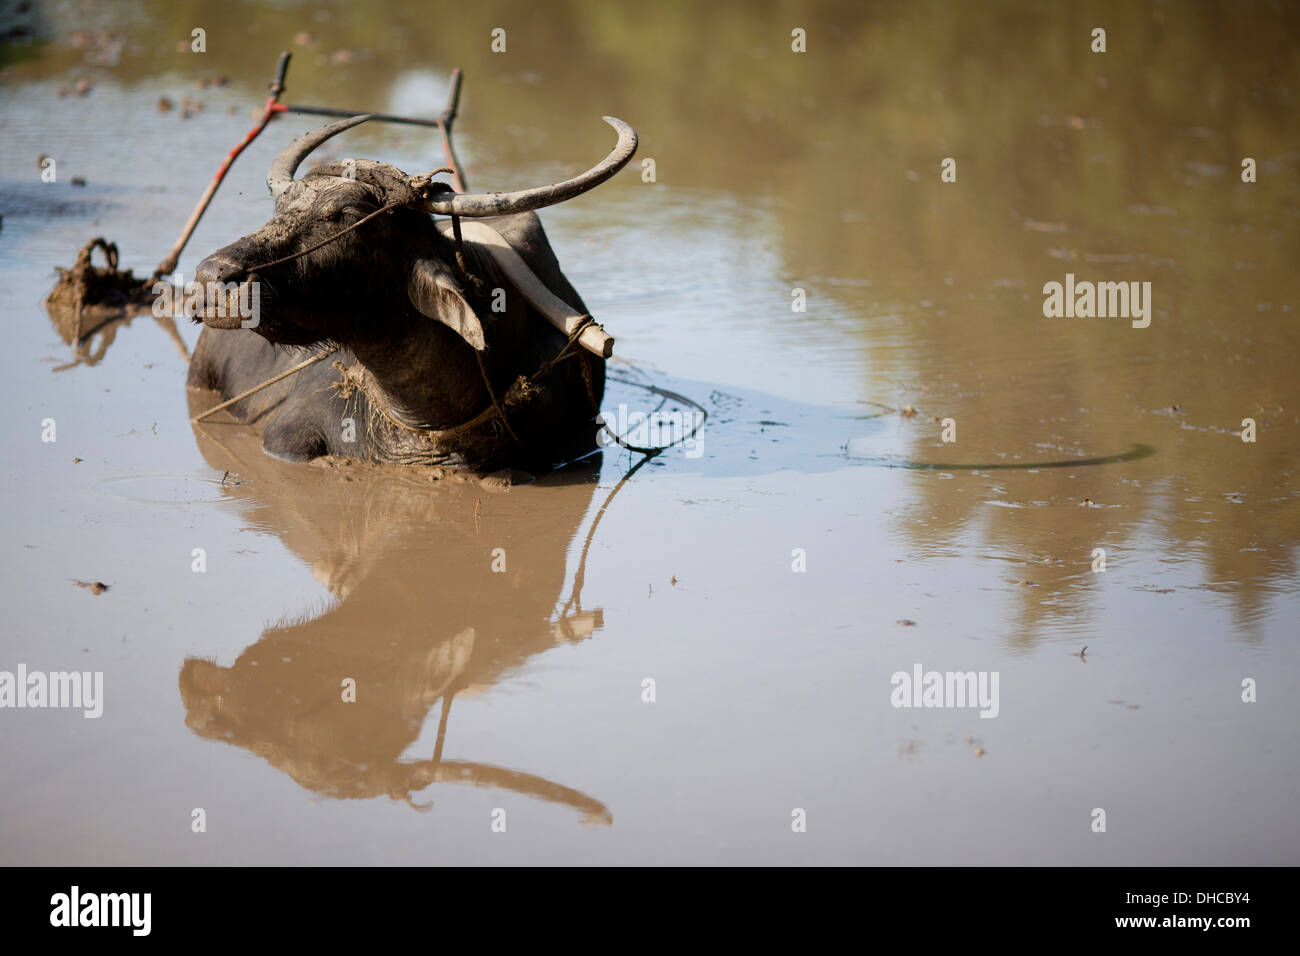 A carabao rests during a break period while working to level a rice field near Mansalay, Oriental Mindoro, Philippines. Stock Photo